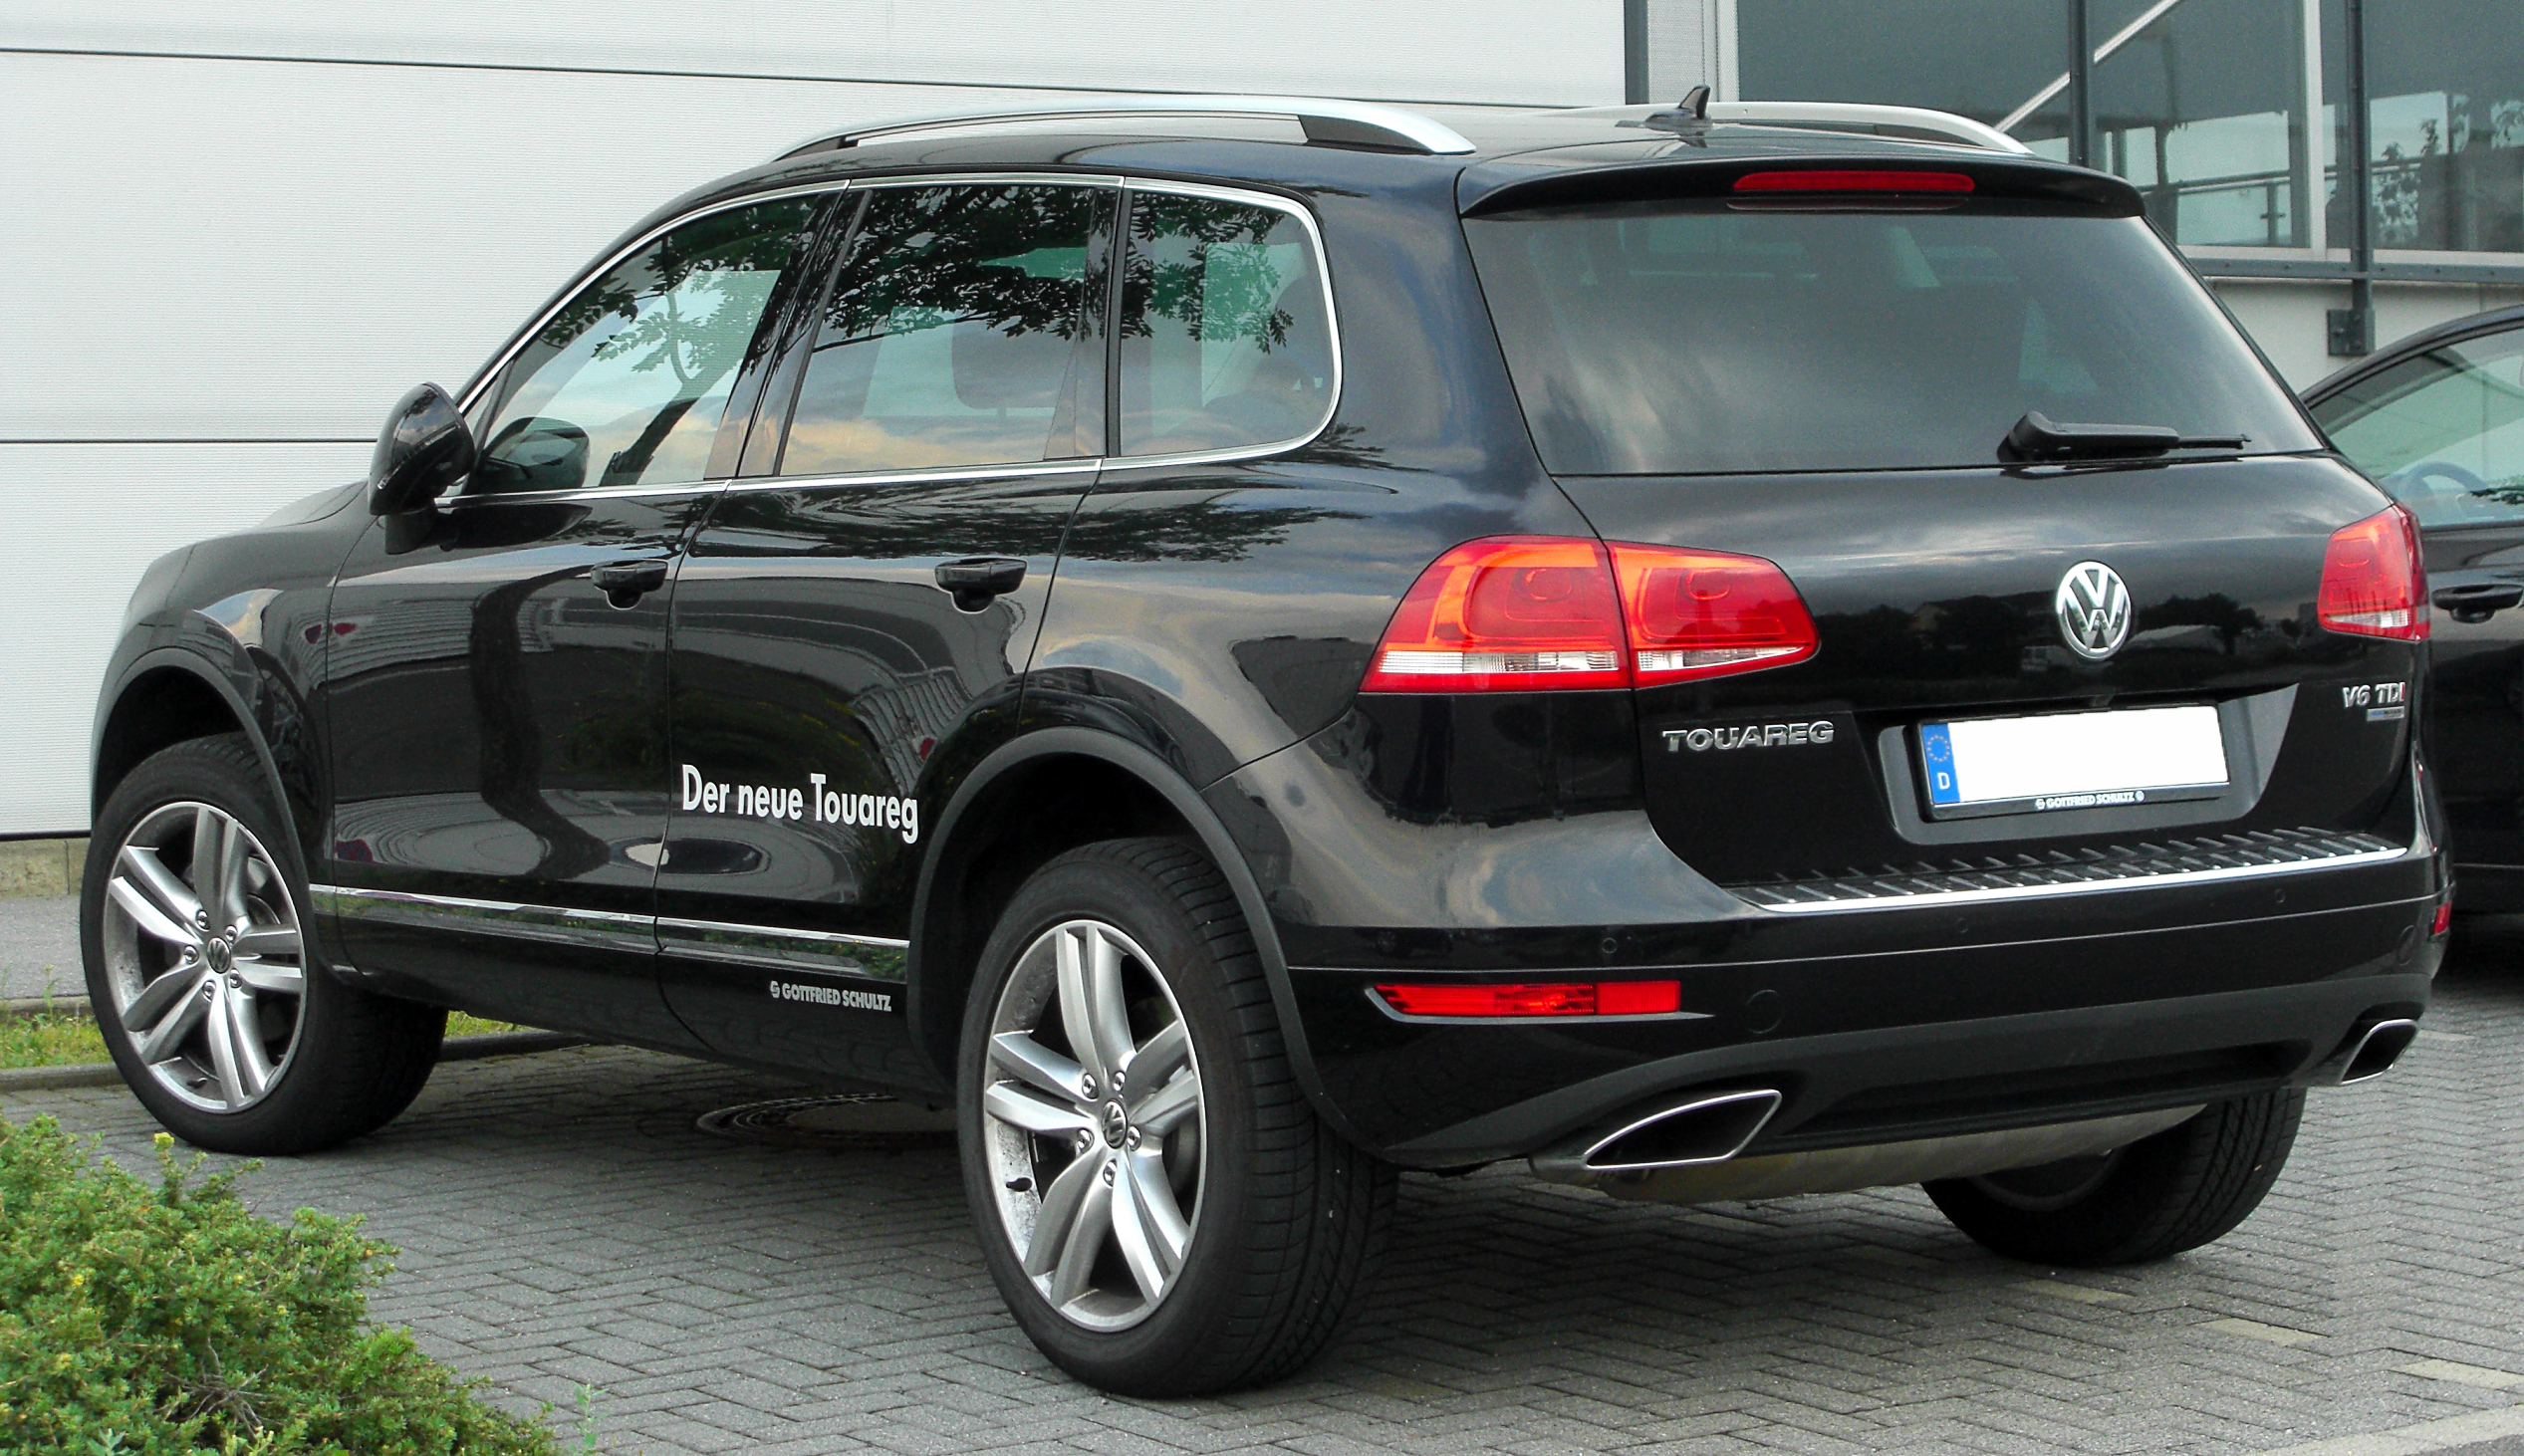 File Vw Touareg Ii V6 Tdi Bluemotion Rear 20100722 Jpg